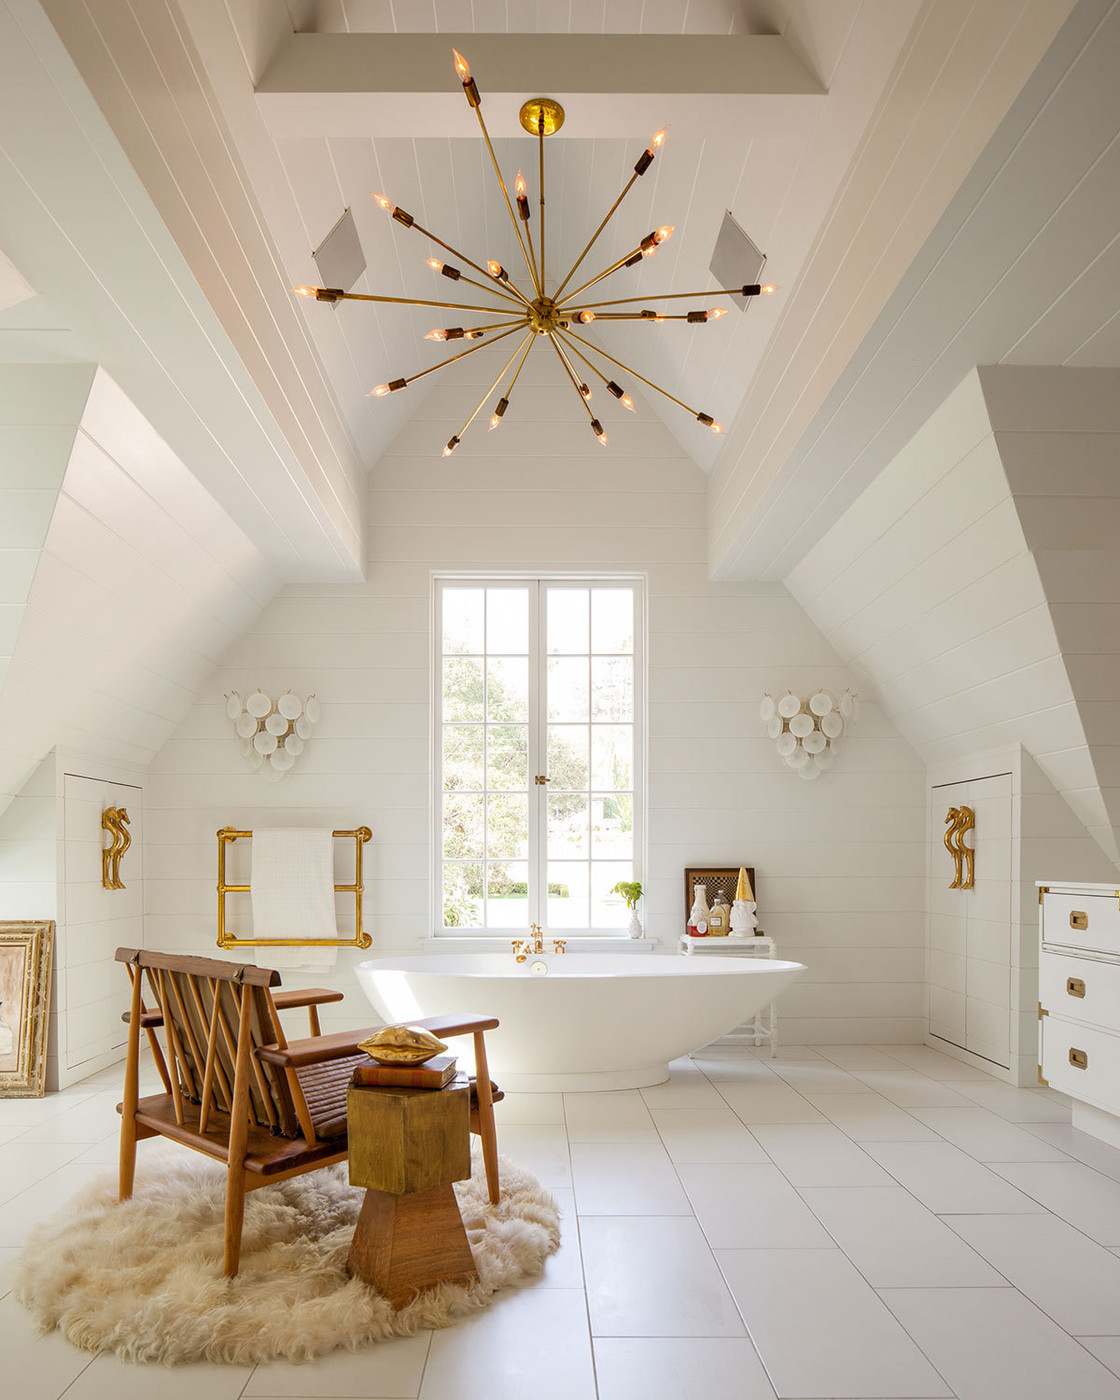 10 Home Design Trends For 2016